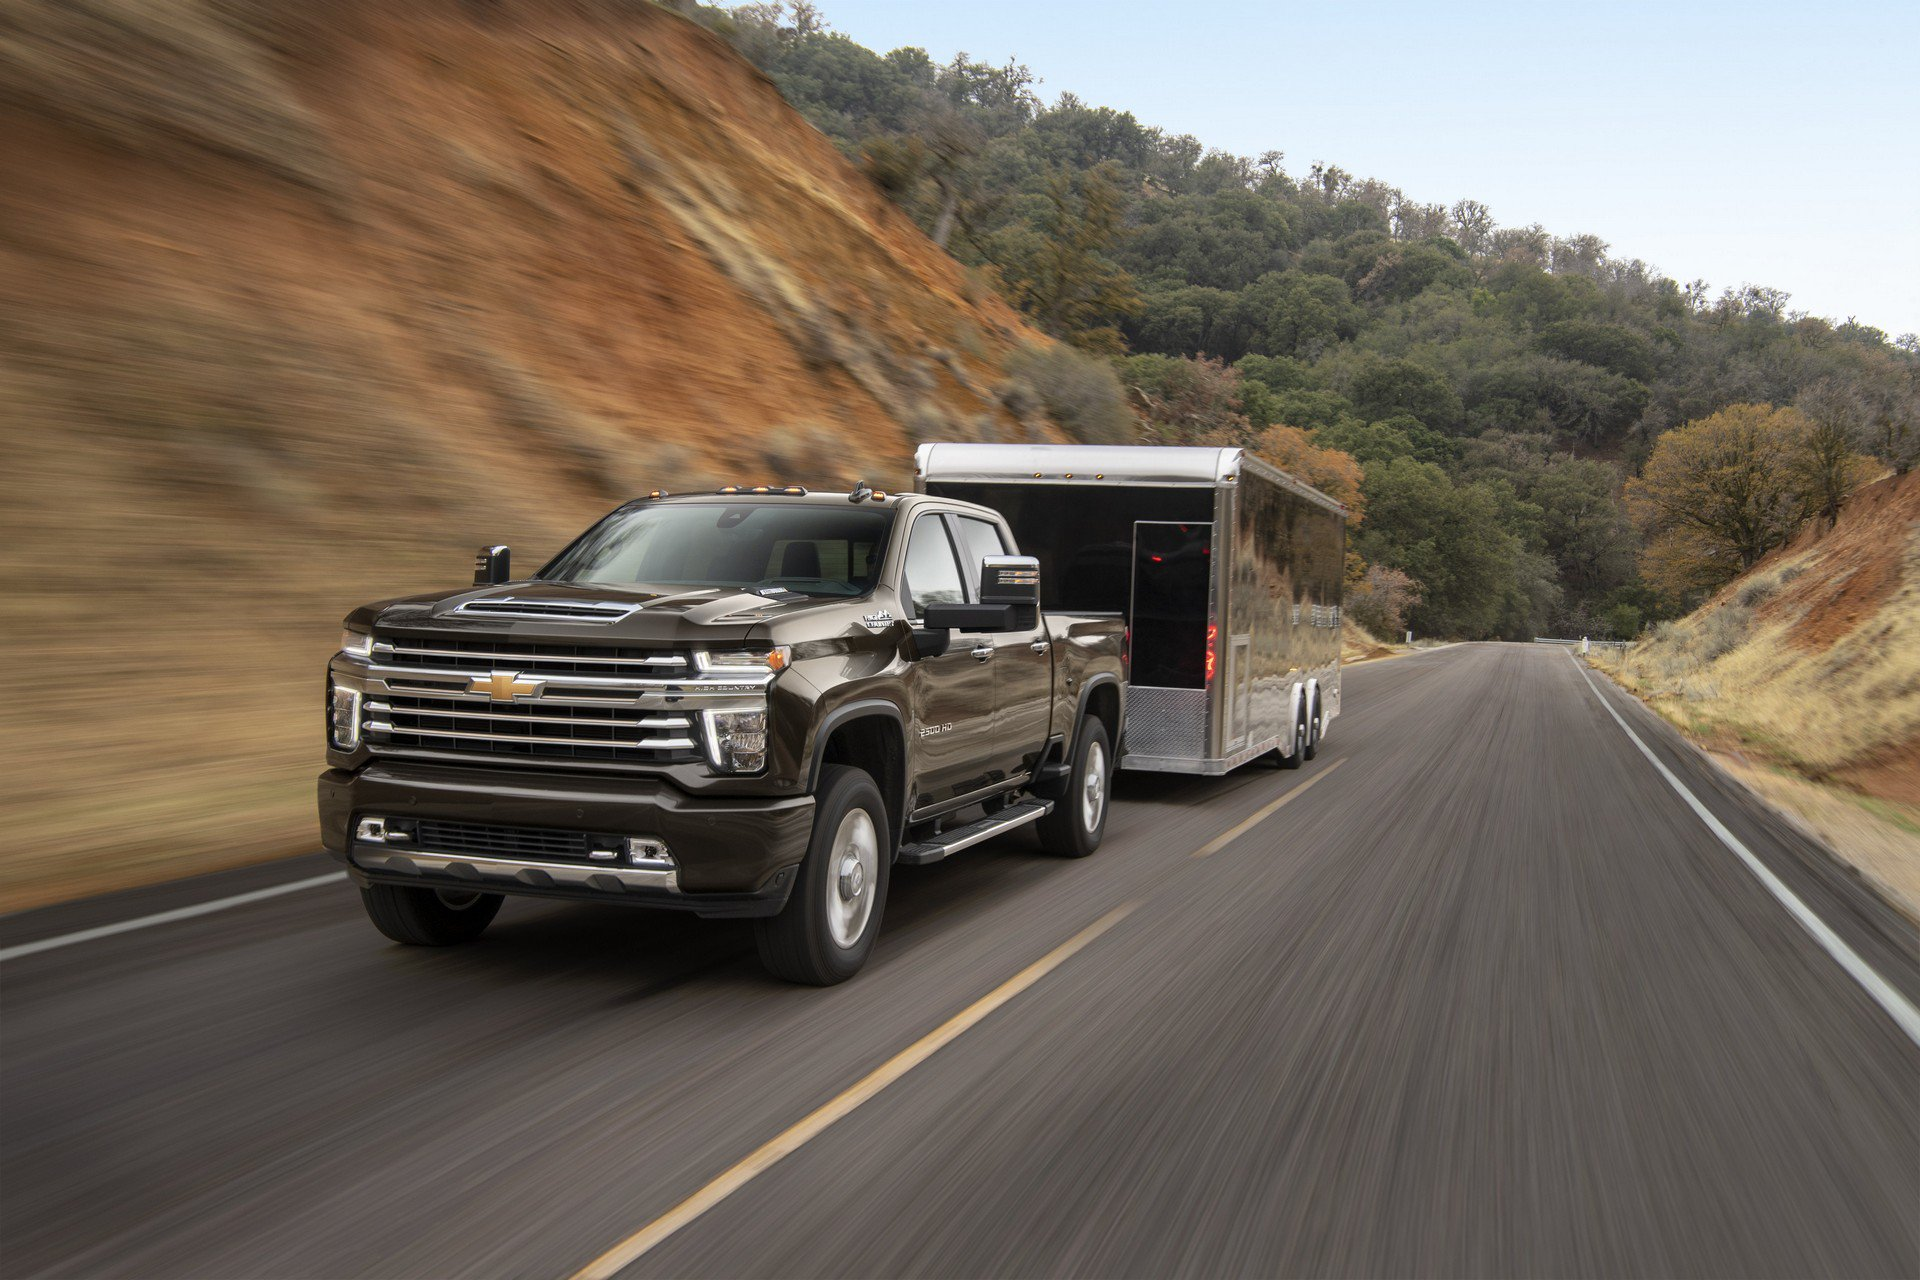 2020 Chevrolet Silverado HD Features Best-In-Class Towing ...